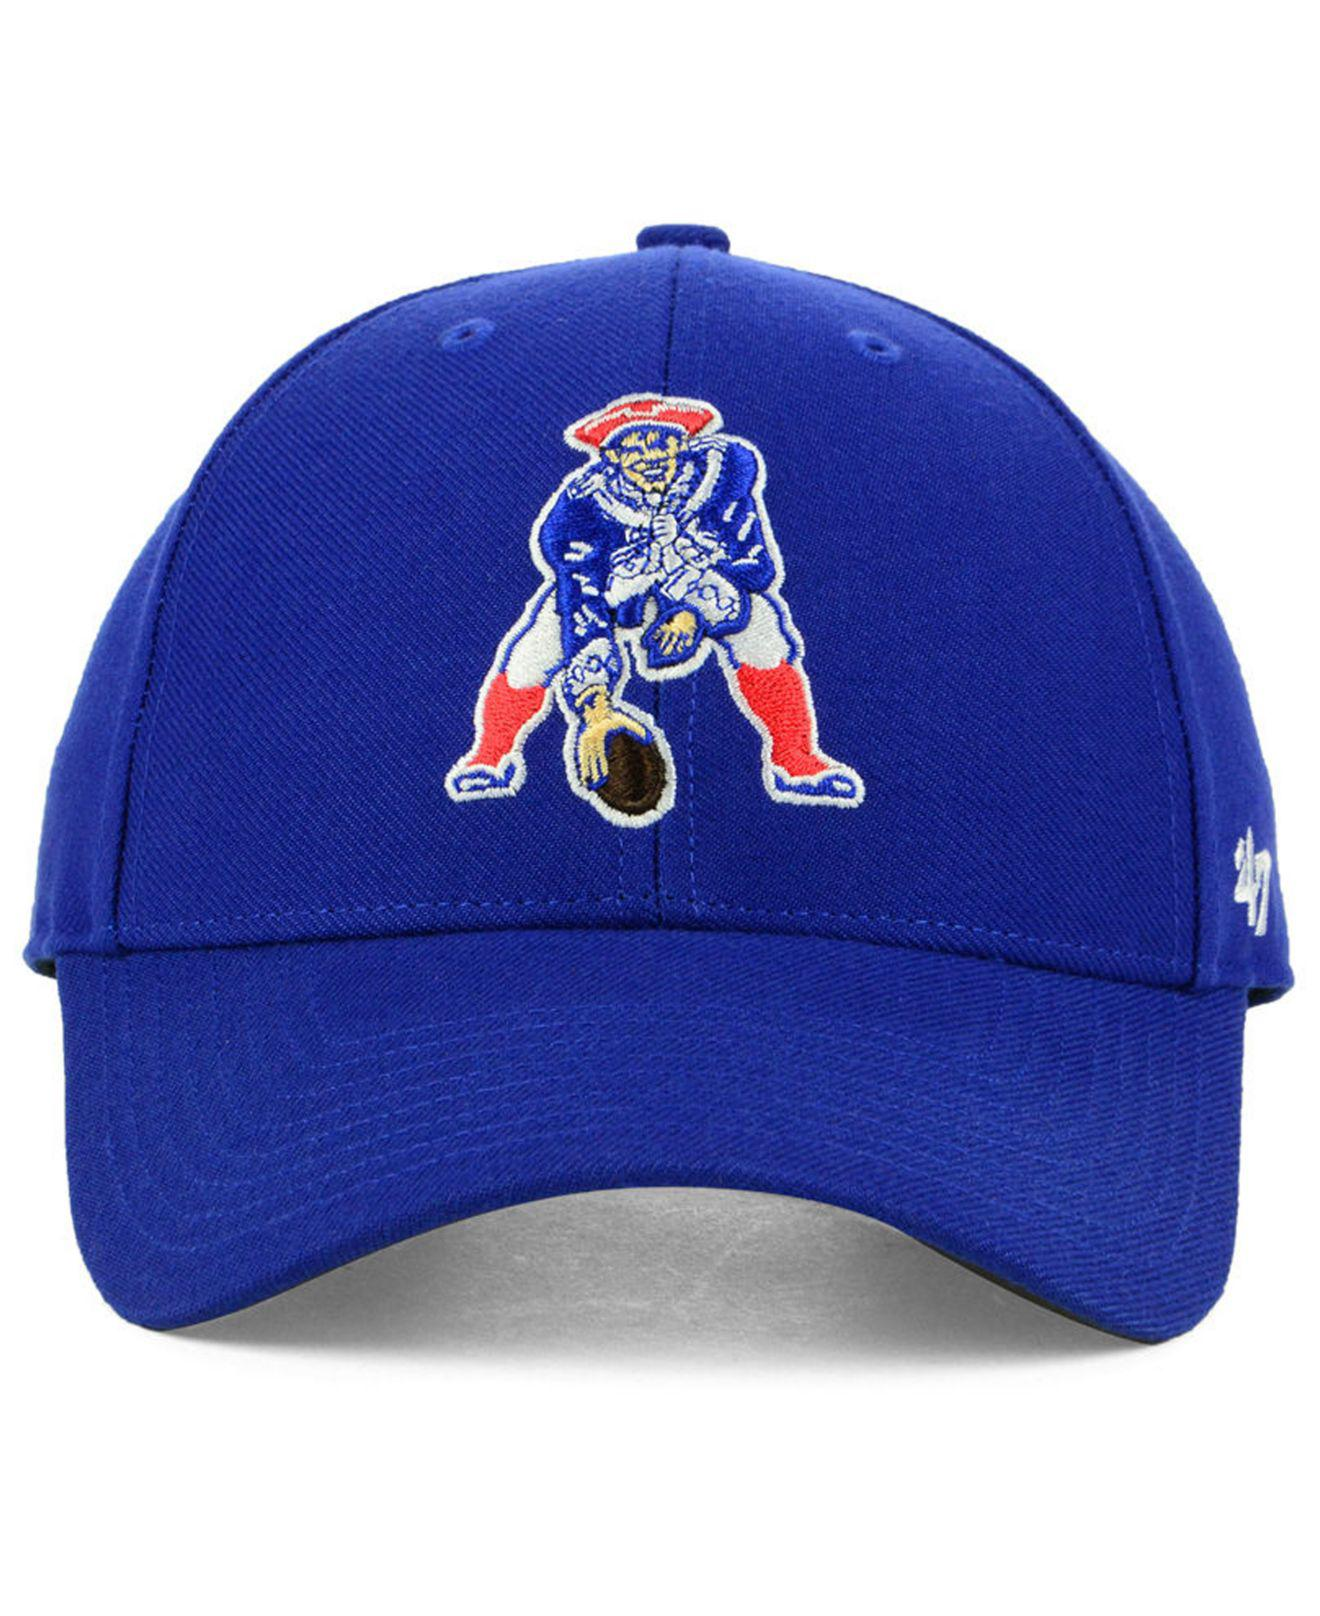 00d5b4abf1838 ... low price lyst 47 brand new england patriots mvp cap in blue for men  7ec85 6b57a